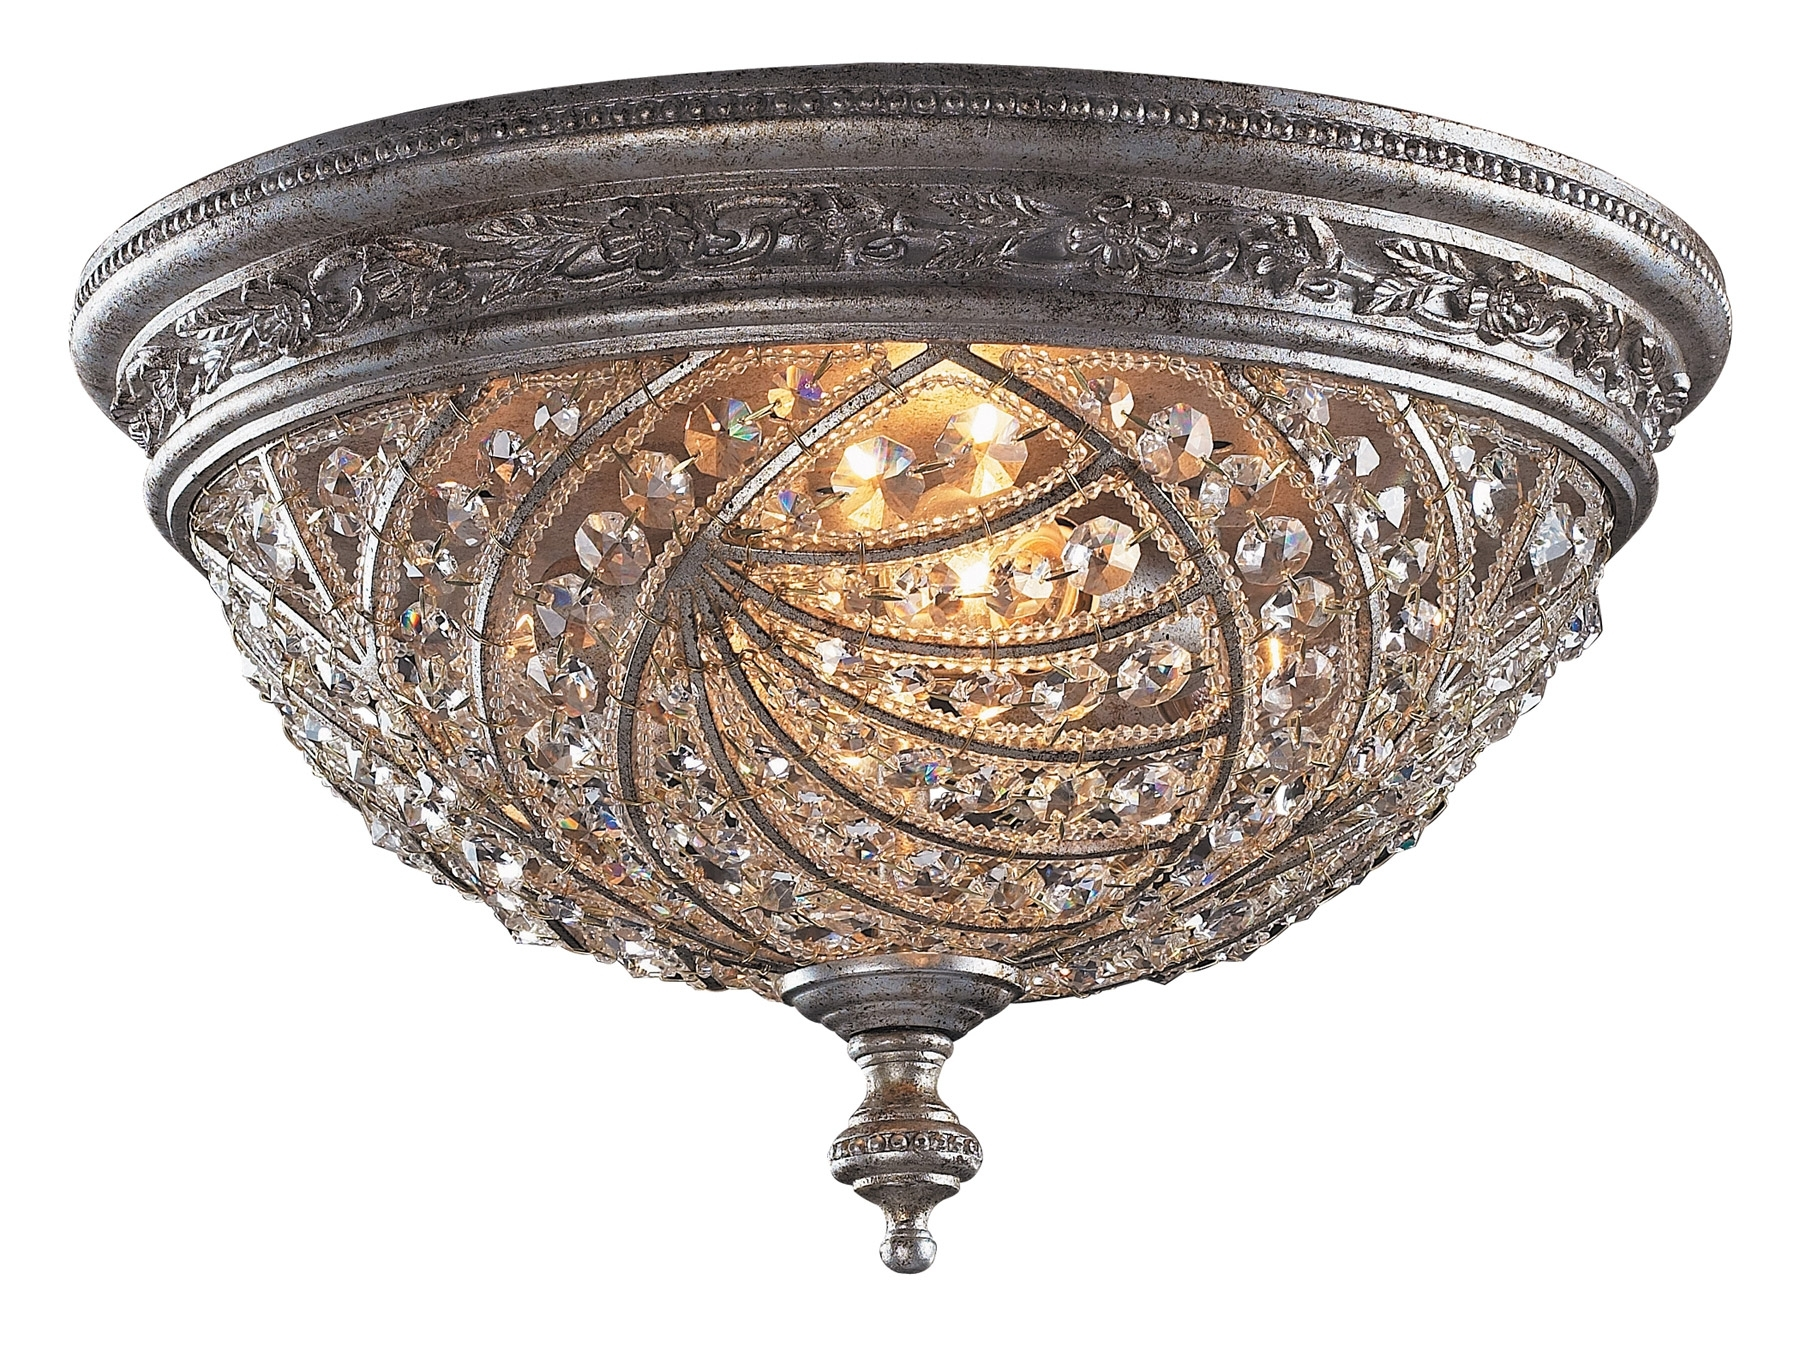 Lighting 6232/4 Crystal Renaissance Flush Mount Ceiling Fixture Regarding Latest Flush Chandelier Ceiling Lights (View 14 of 20)